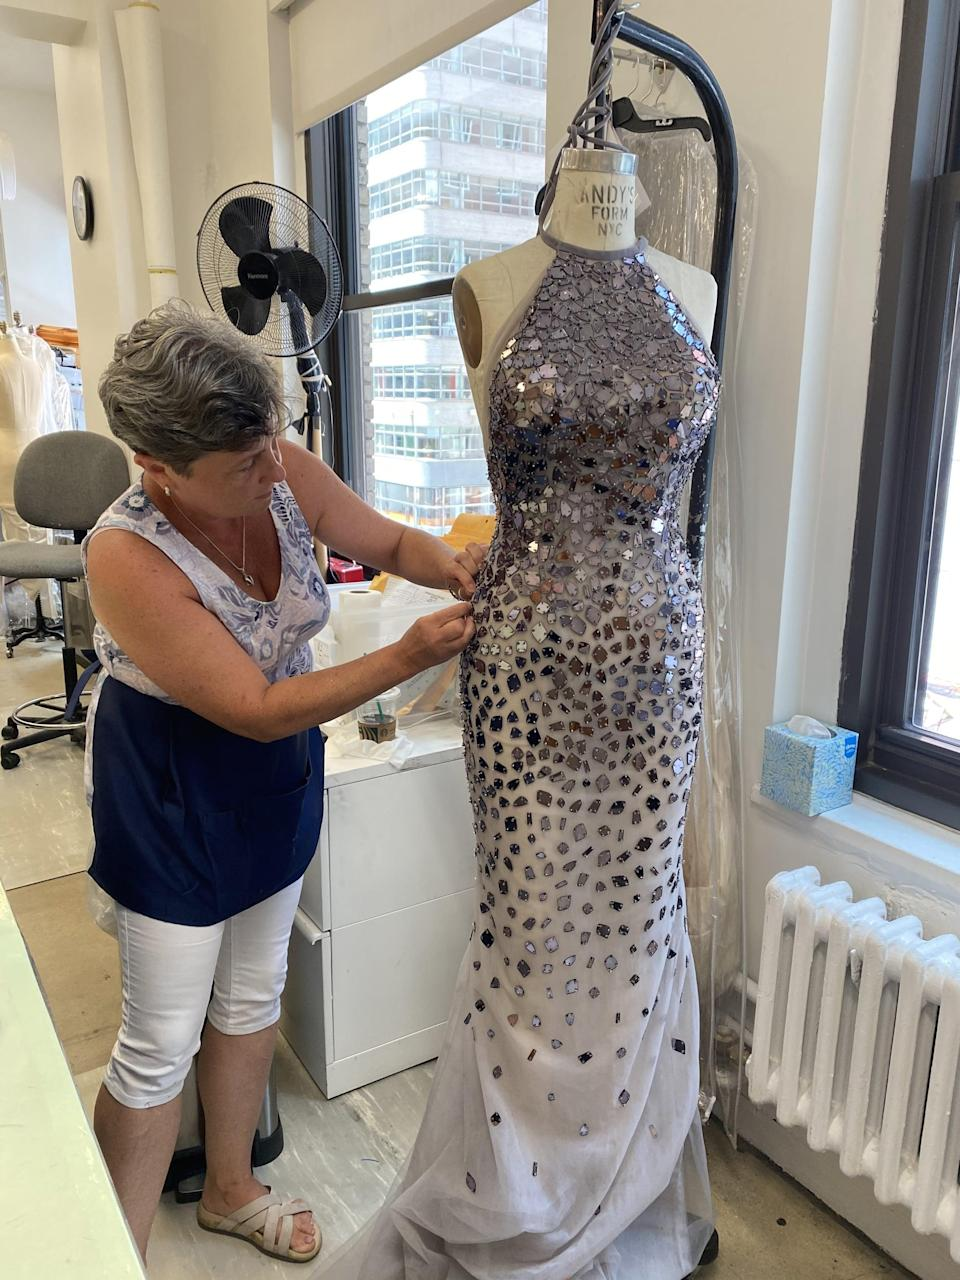 <p>The Lavender gown, as its named, comes complete with mirrored stones that trickle down the bodice and skirt of the halter-style dress.</p>